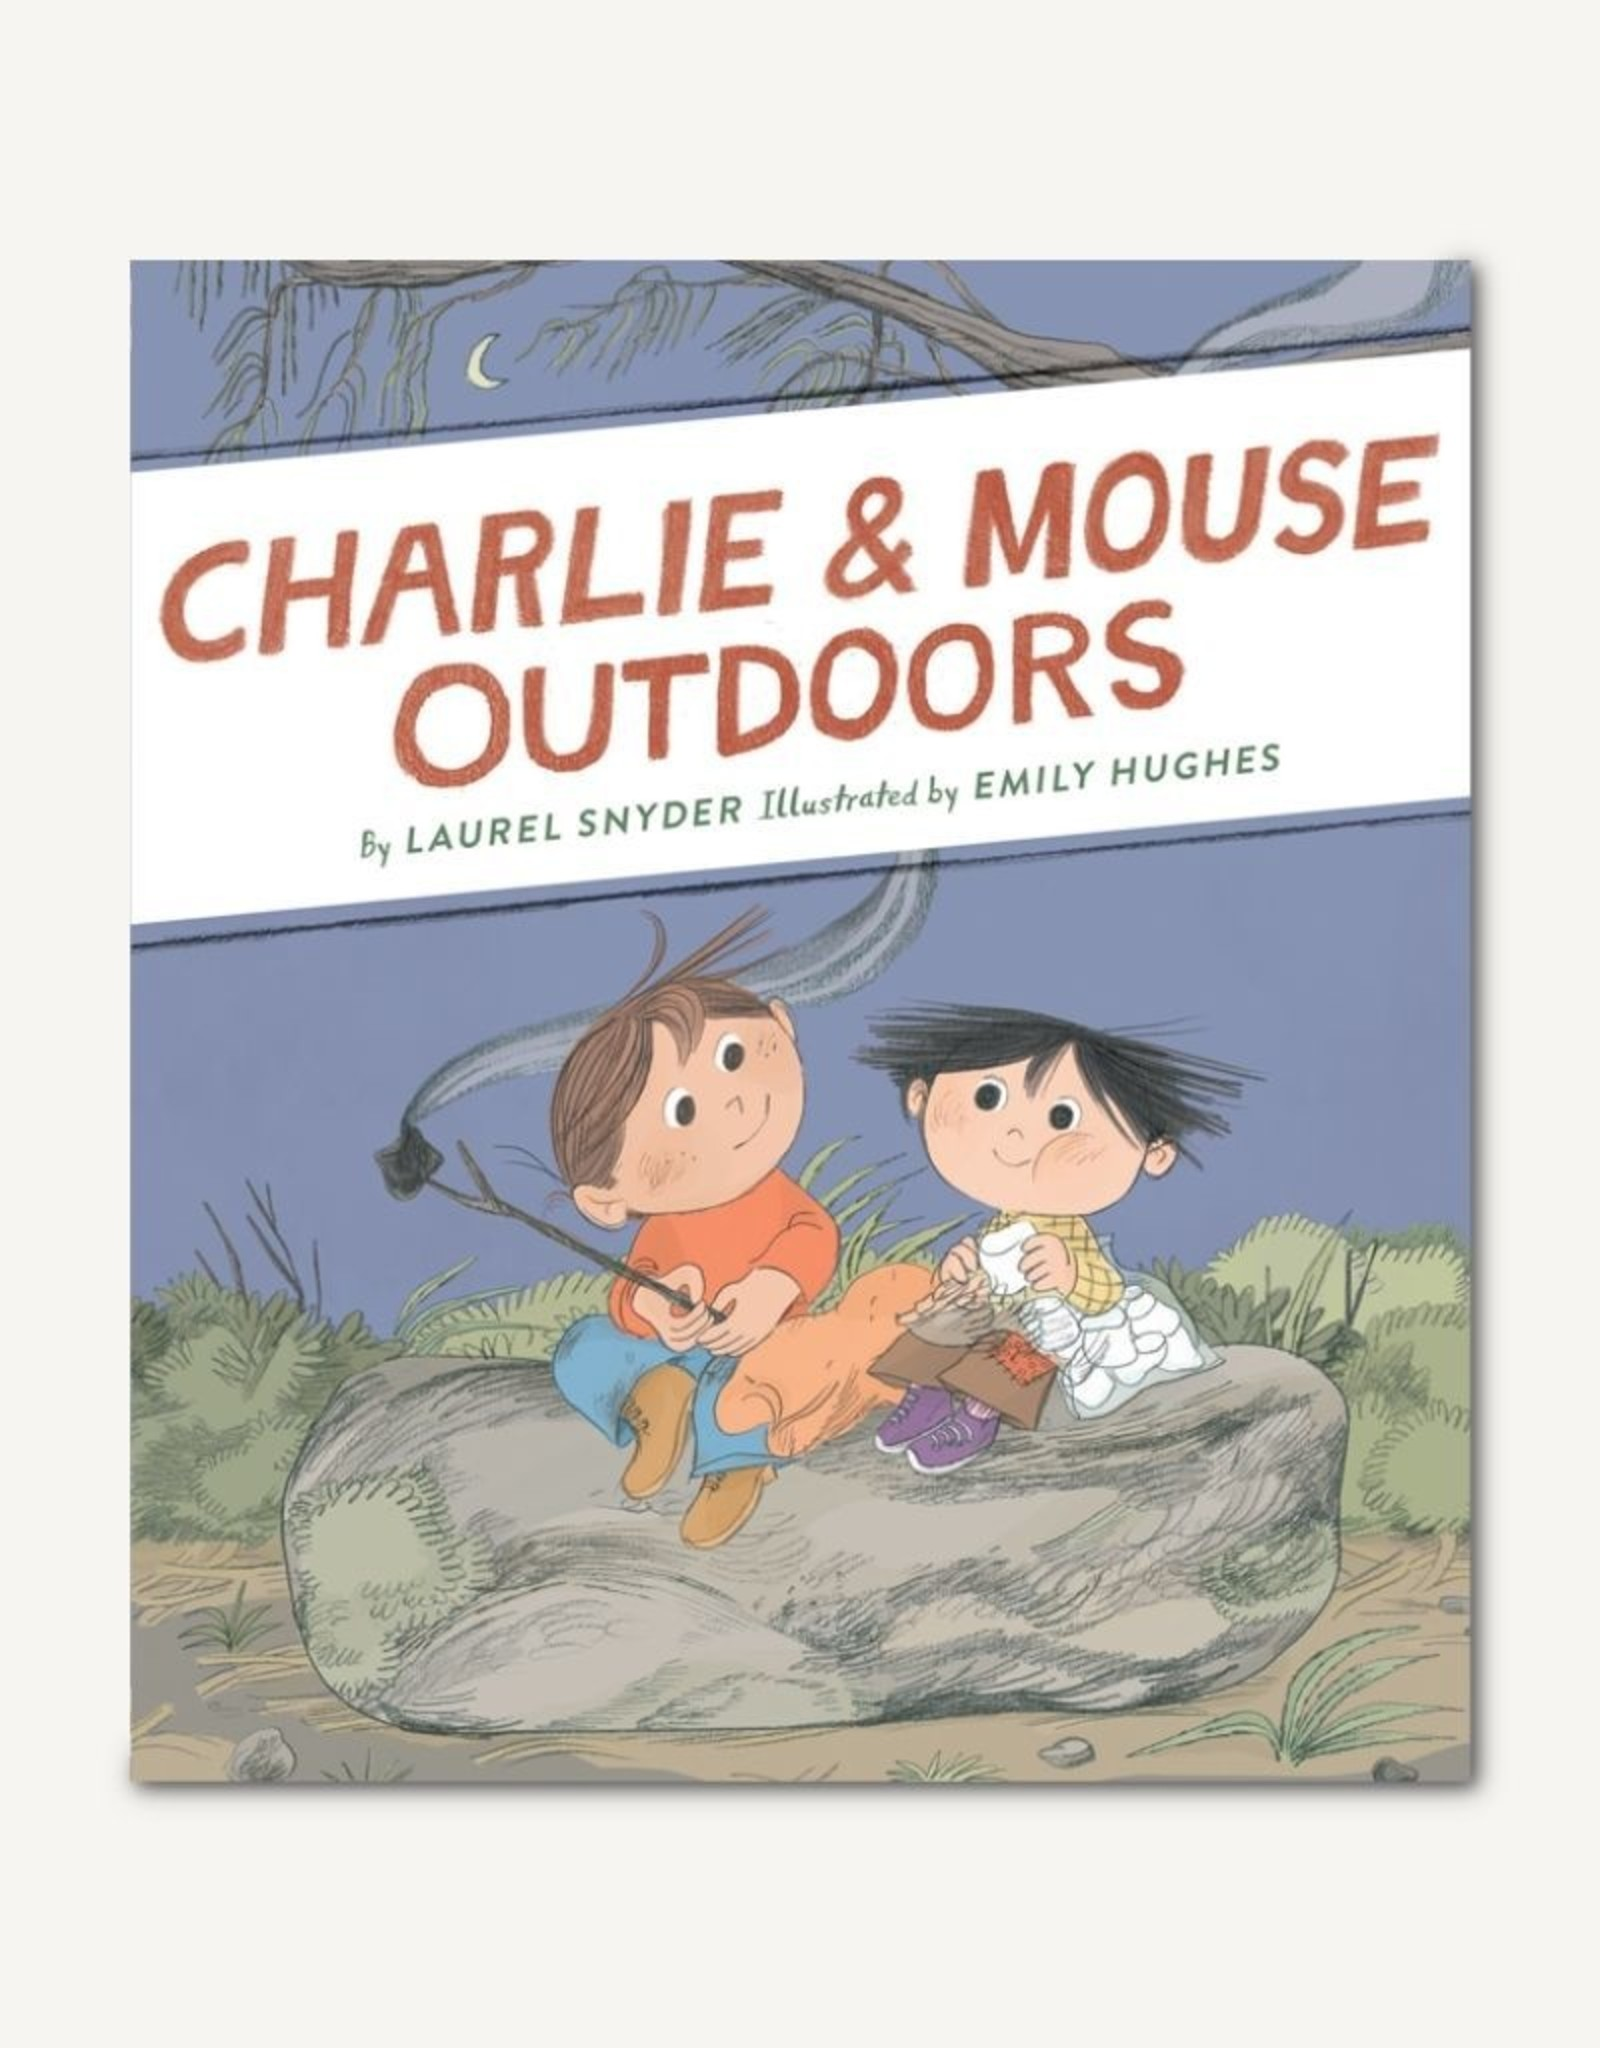 Charlie and Mouse Outdoor